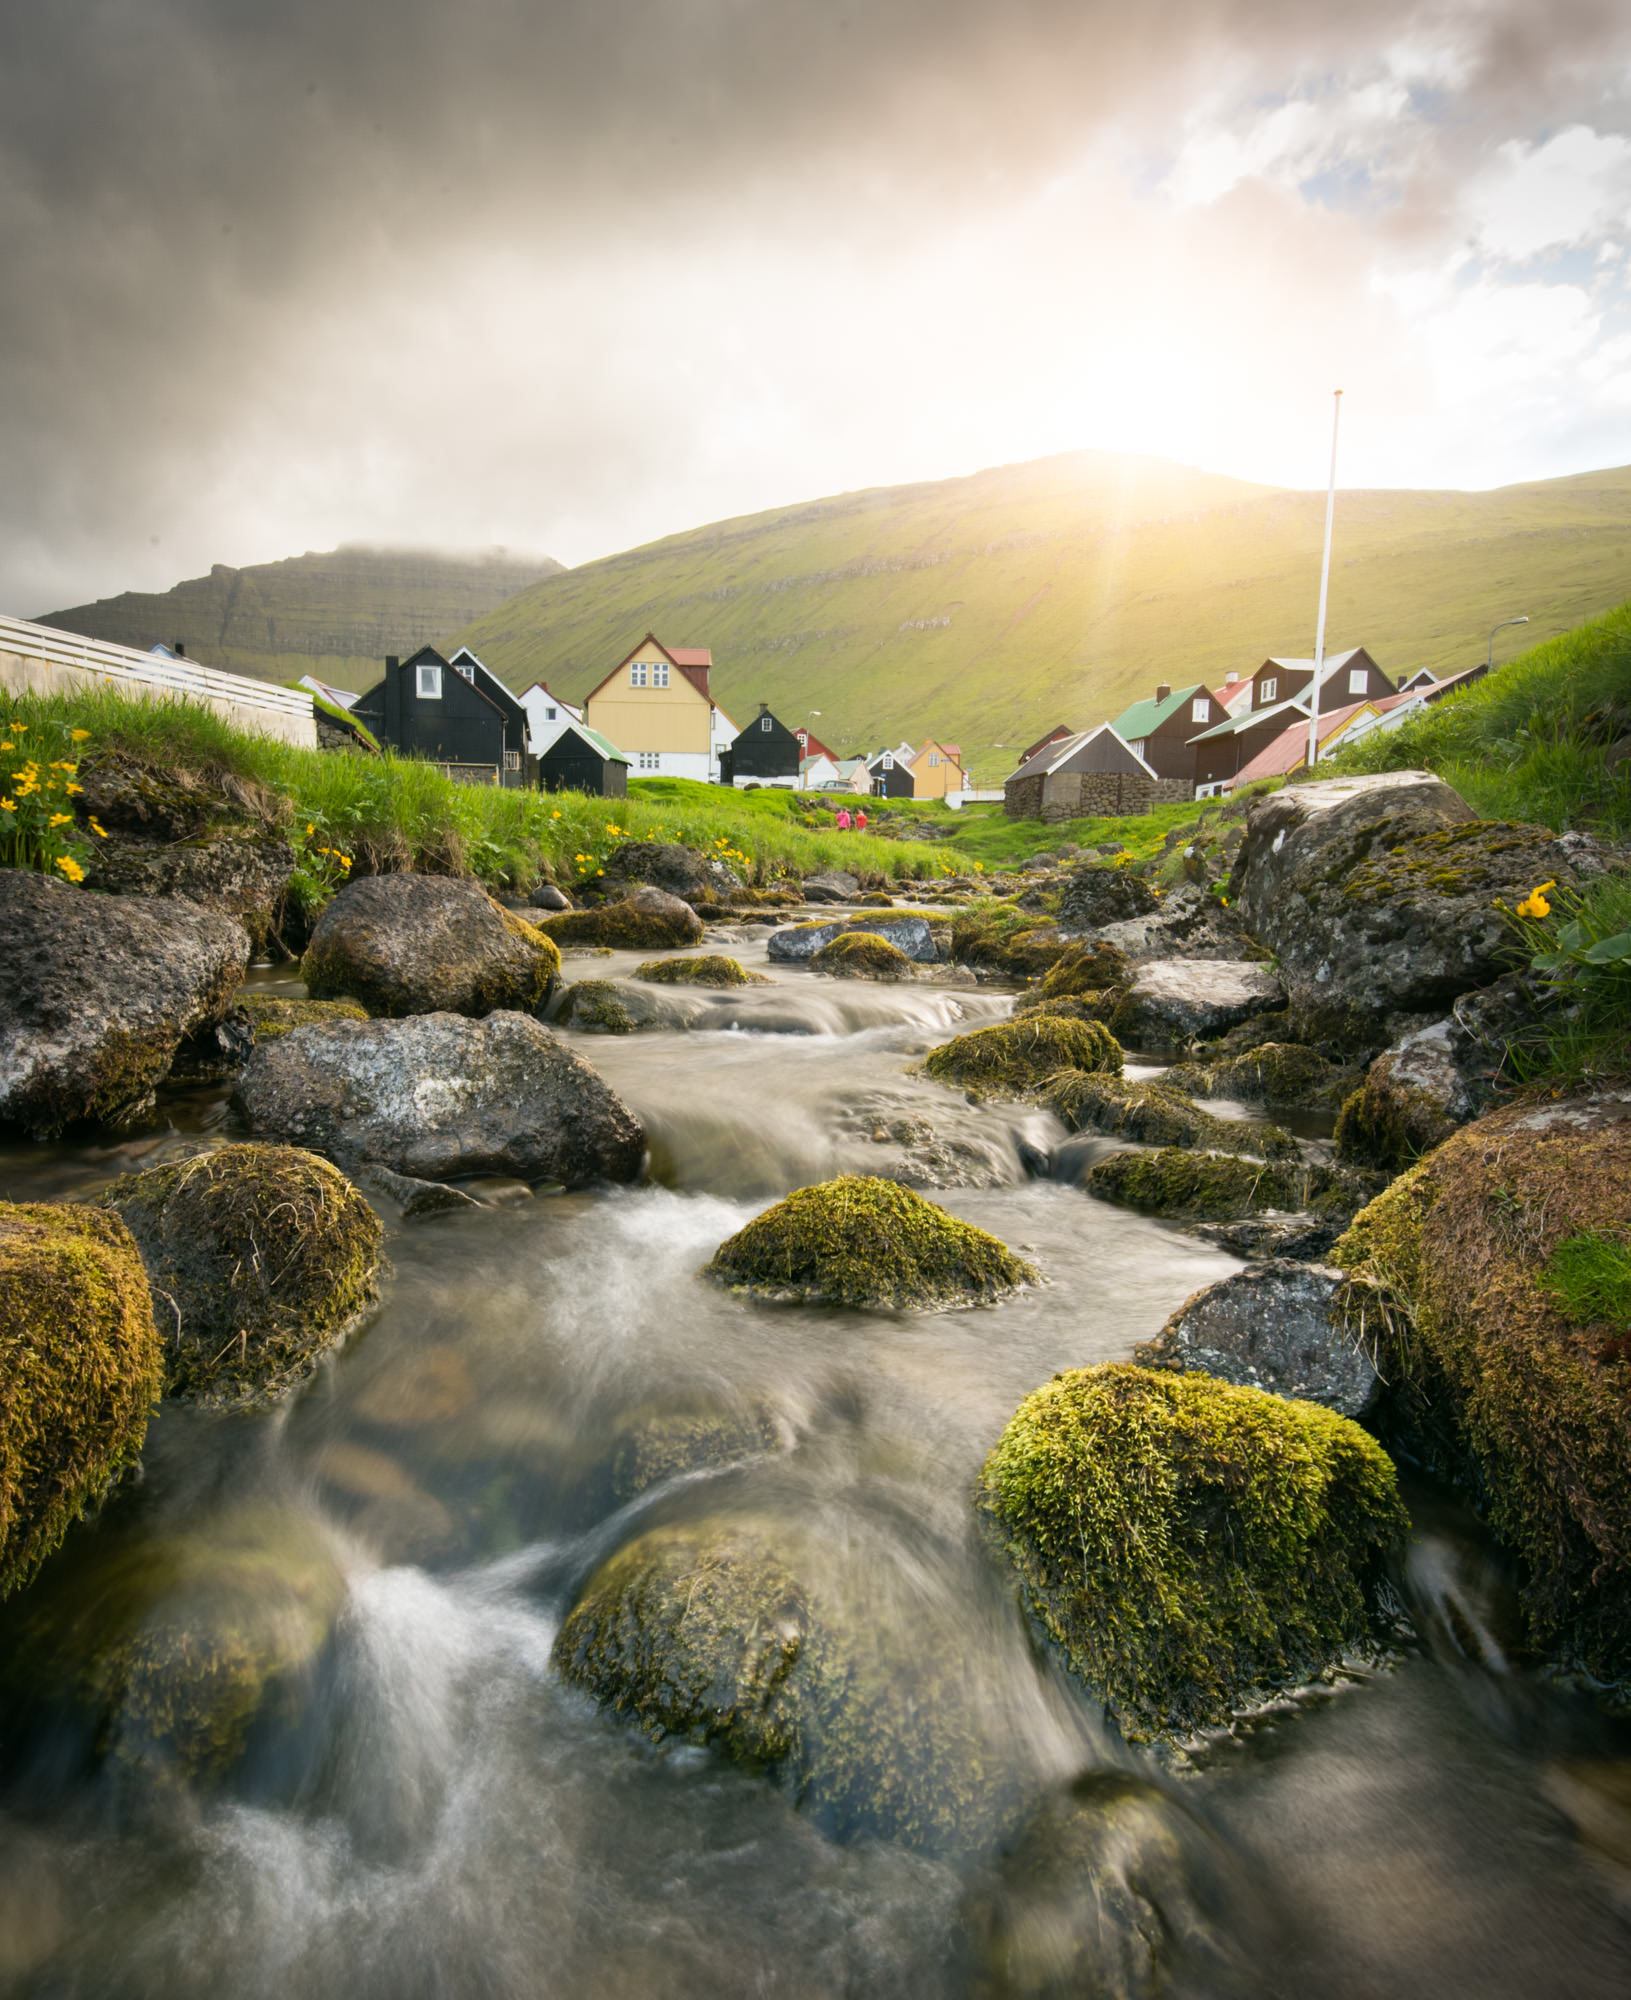 A small fishing village in the Faroe Islands with a stream running through